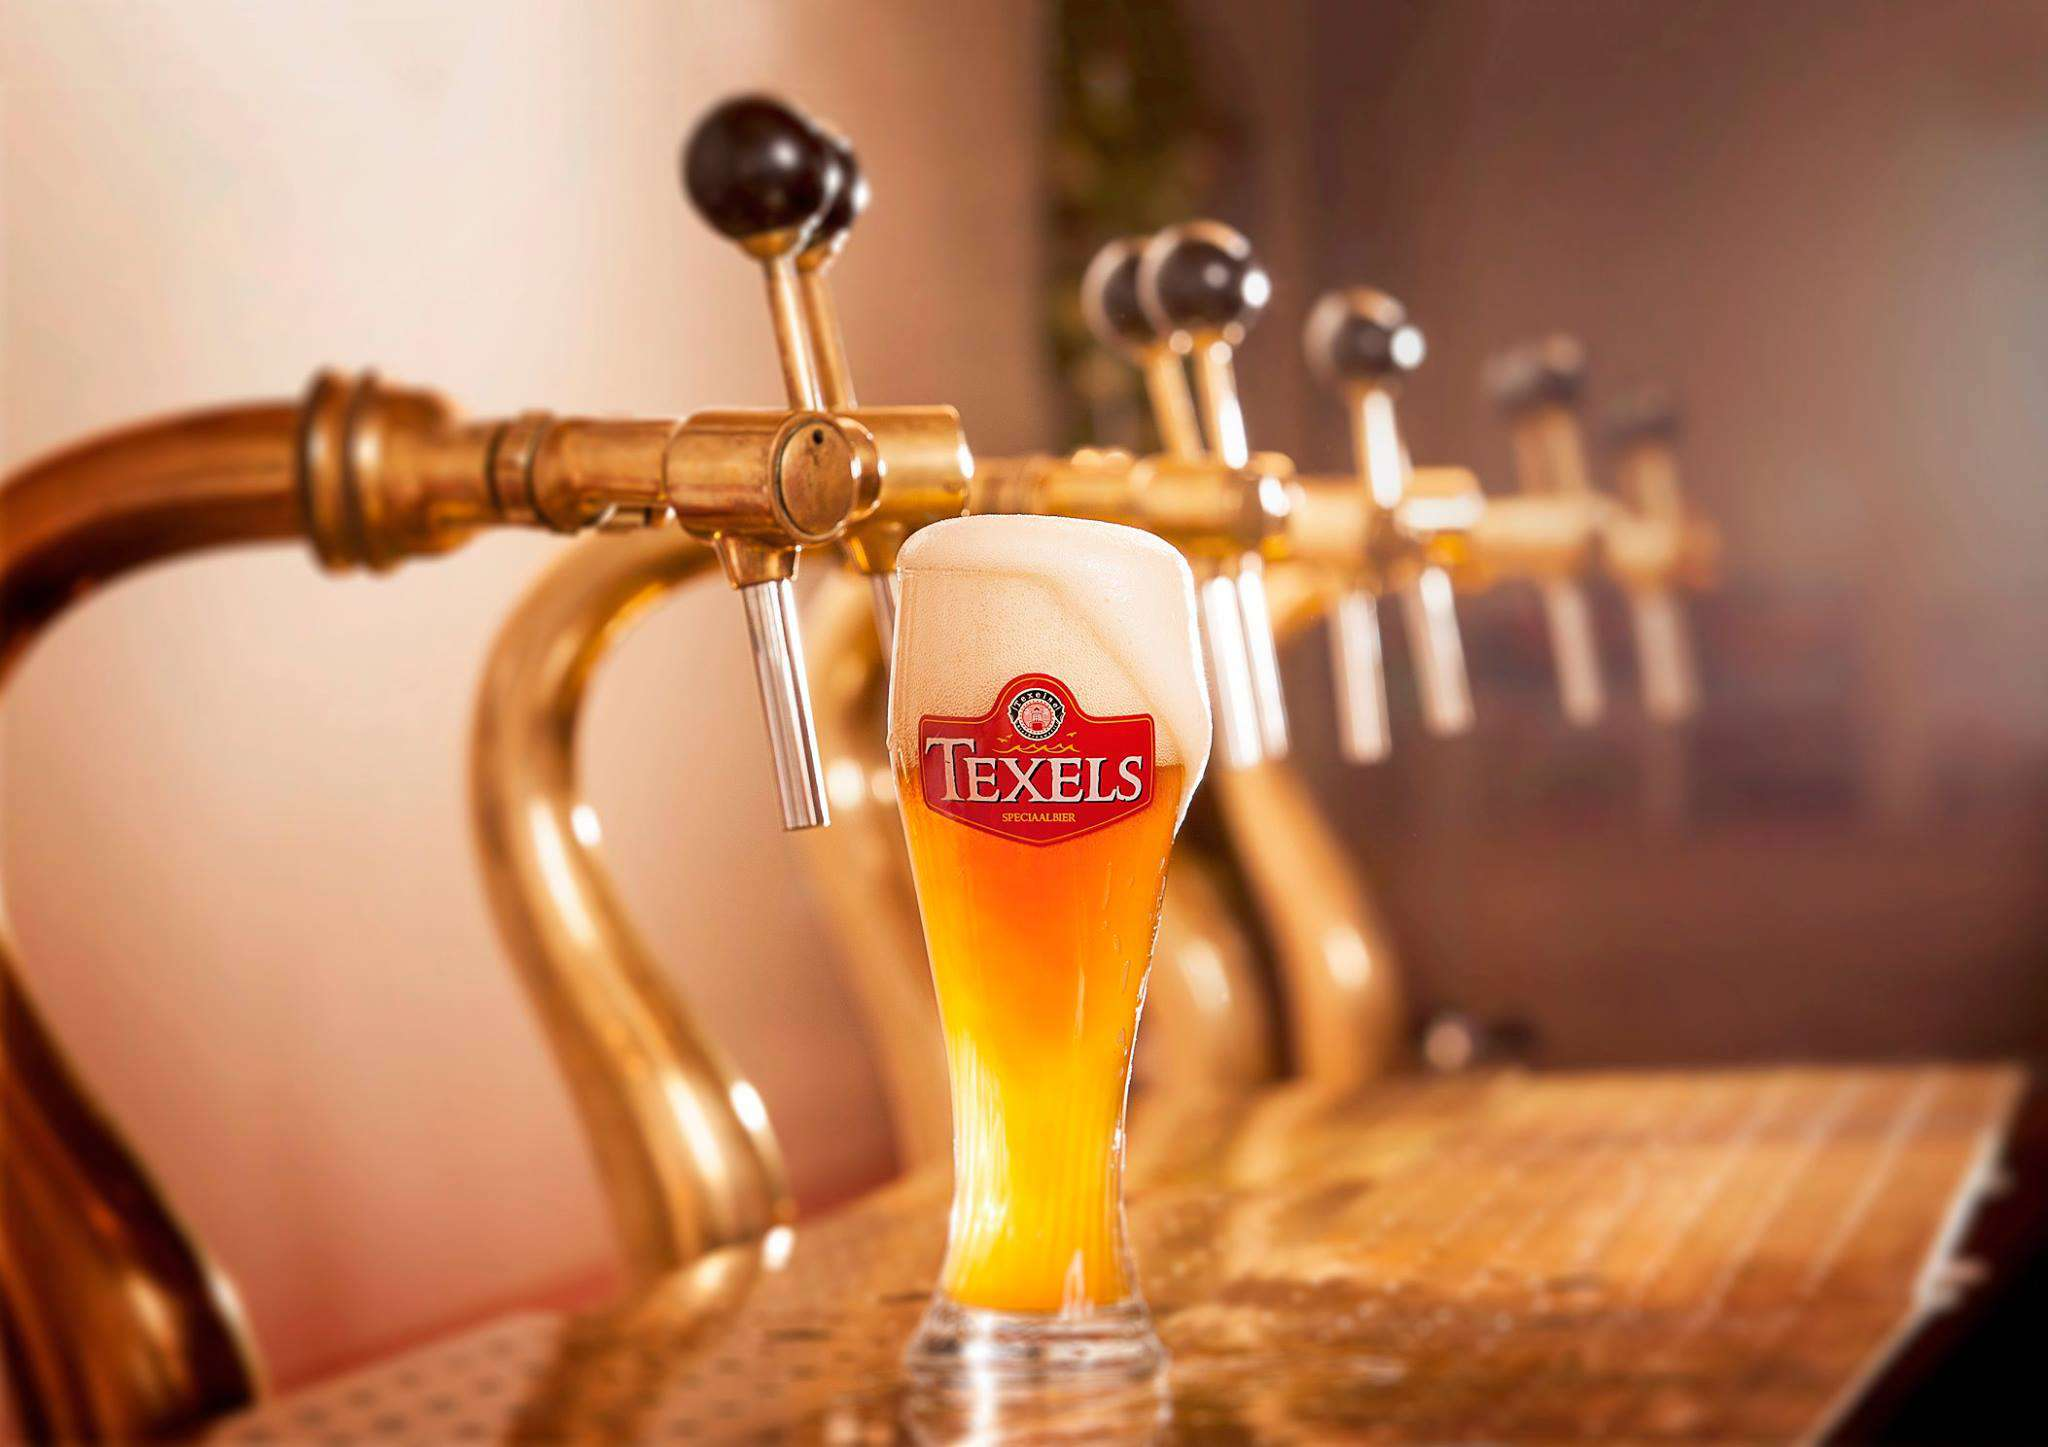 Texels beer glass with a large, foamy head infront of a row of taps